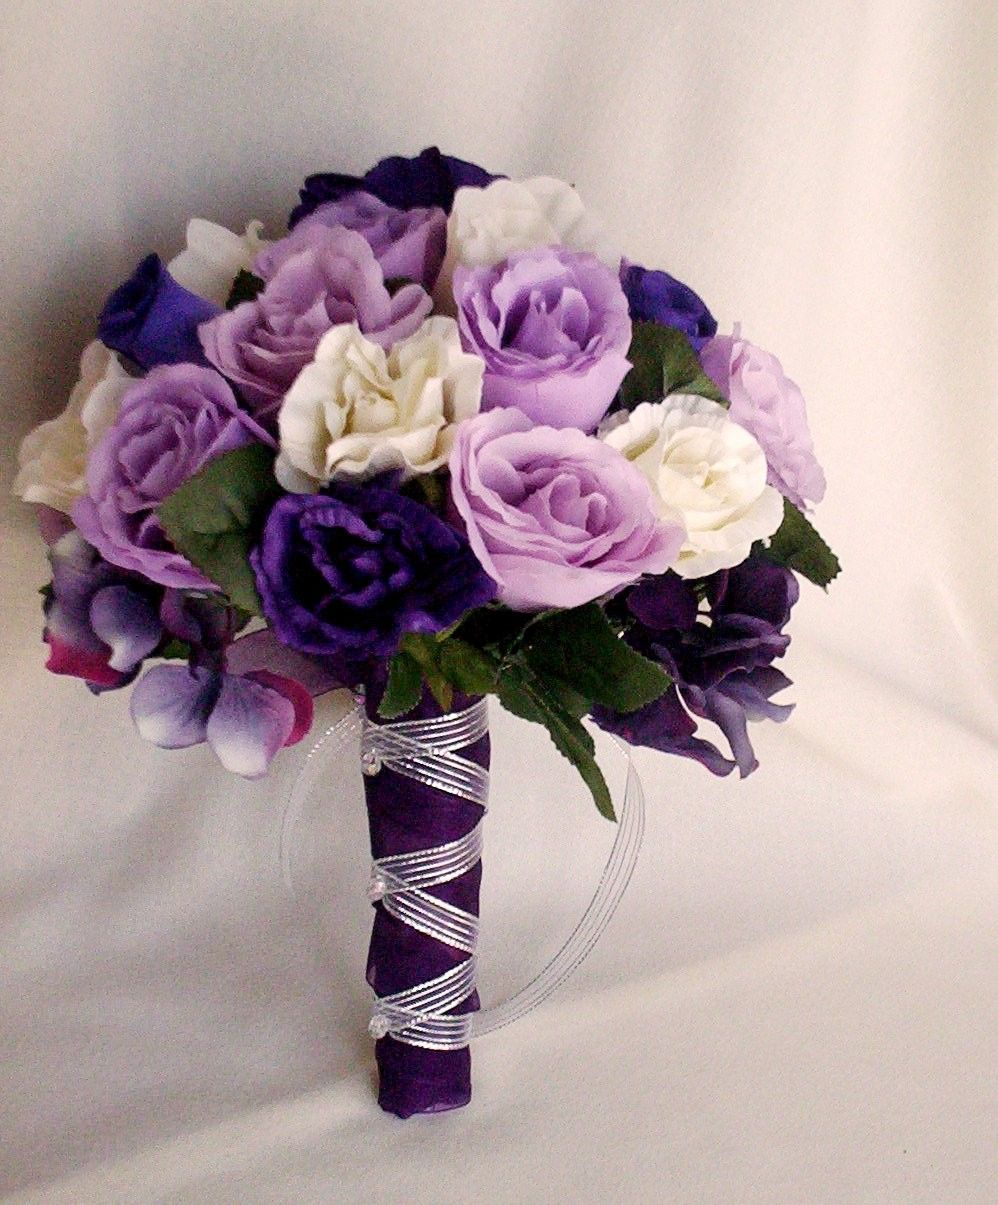 There Are Many Ways To Create Unique Wedding Bouquet Changing Up Shapes Or Creating Silk Bouquets